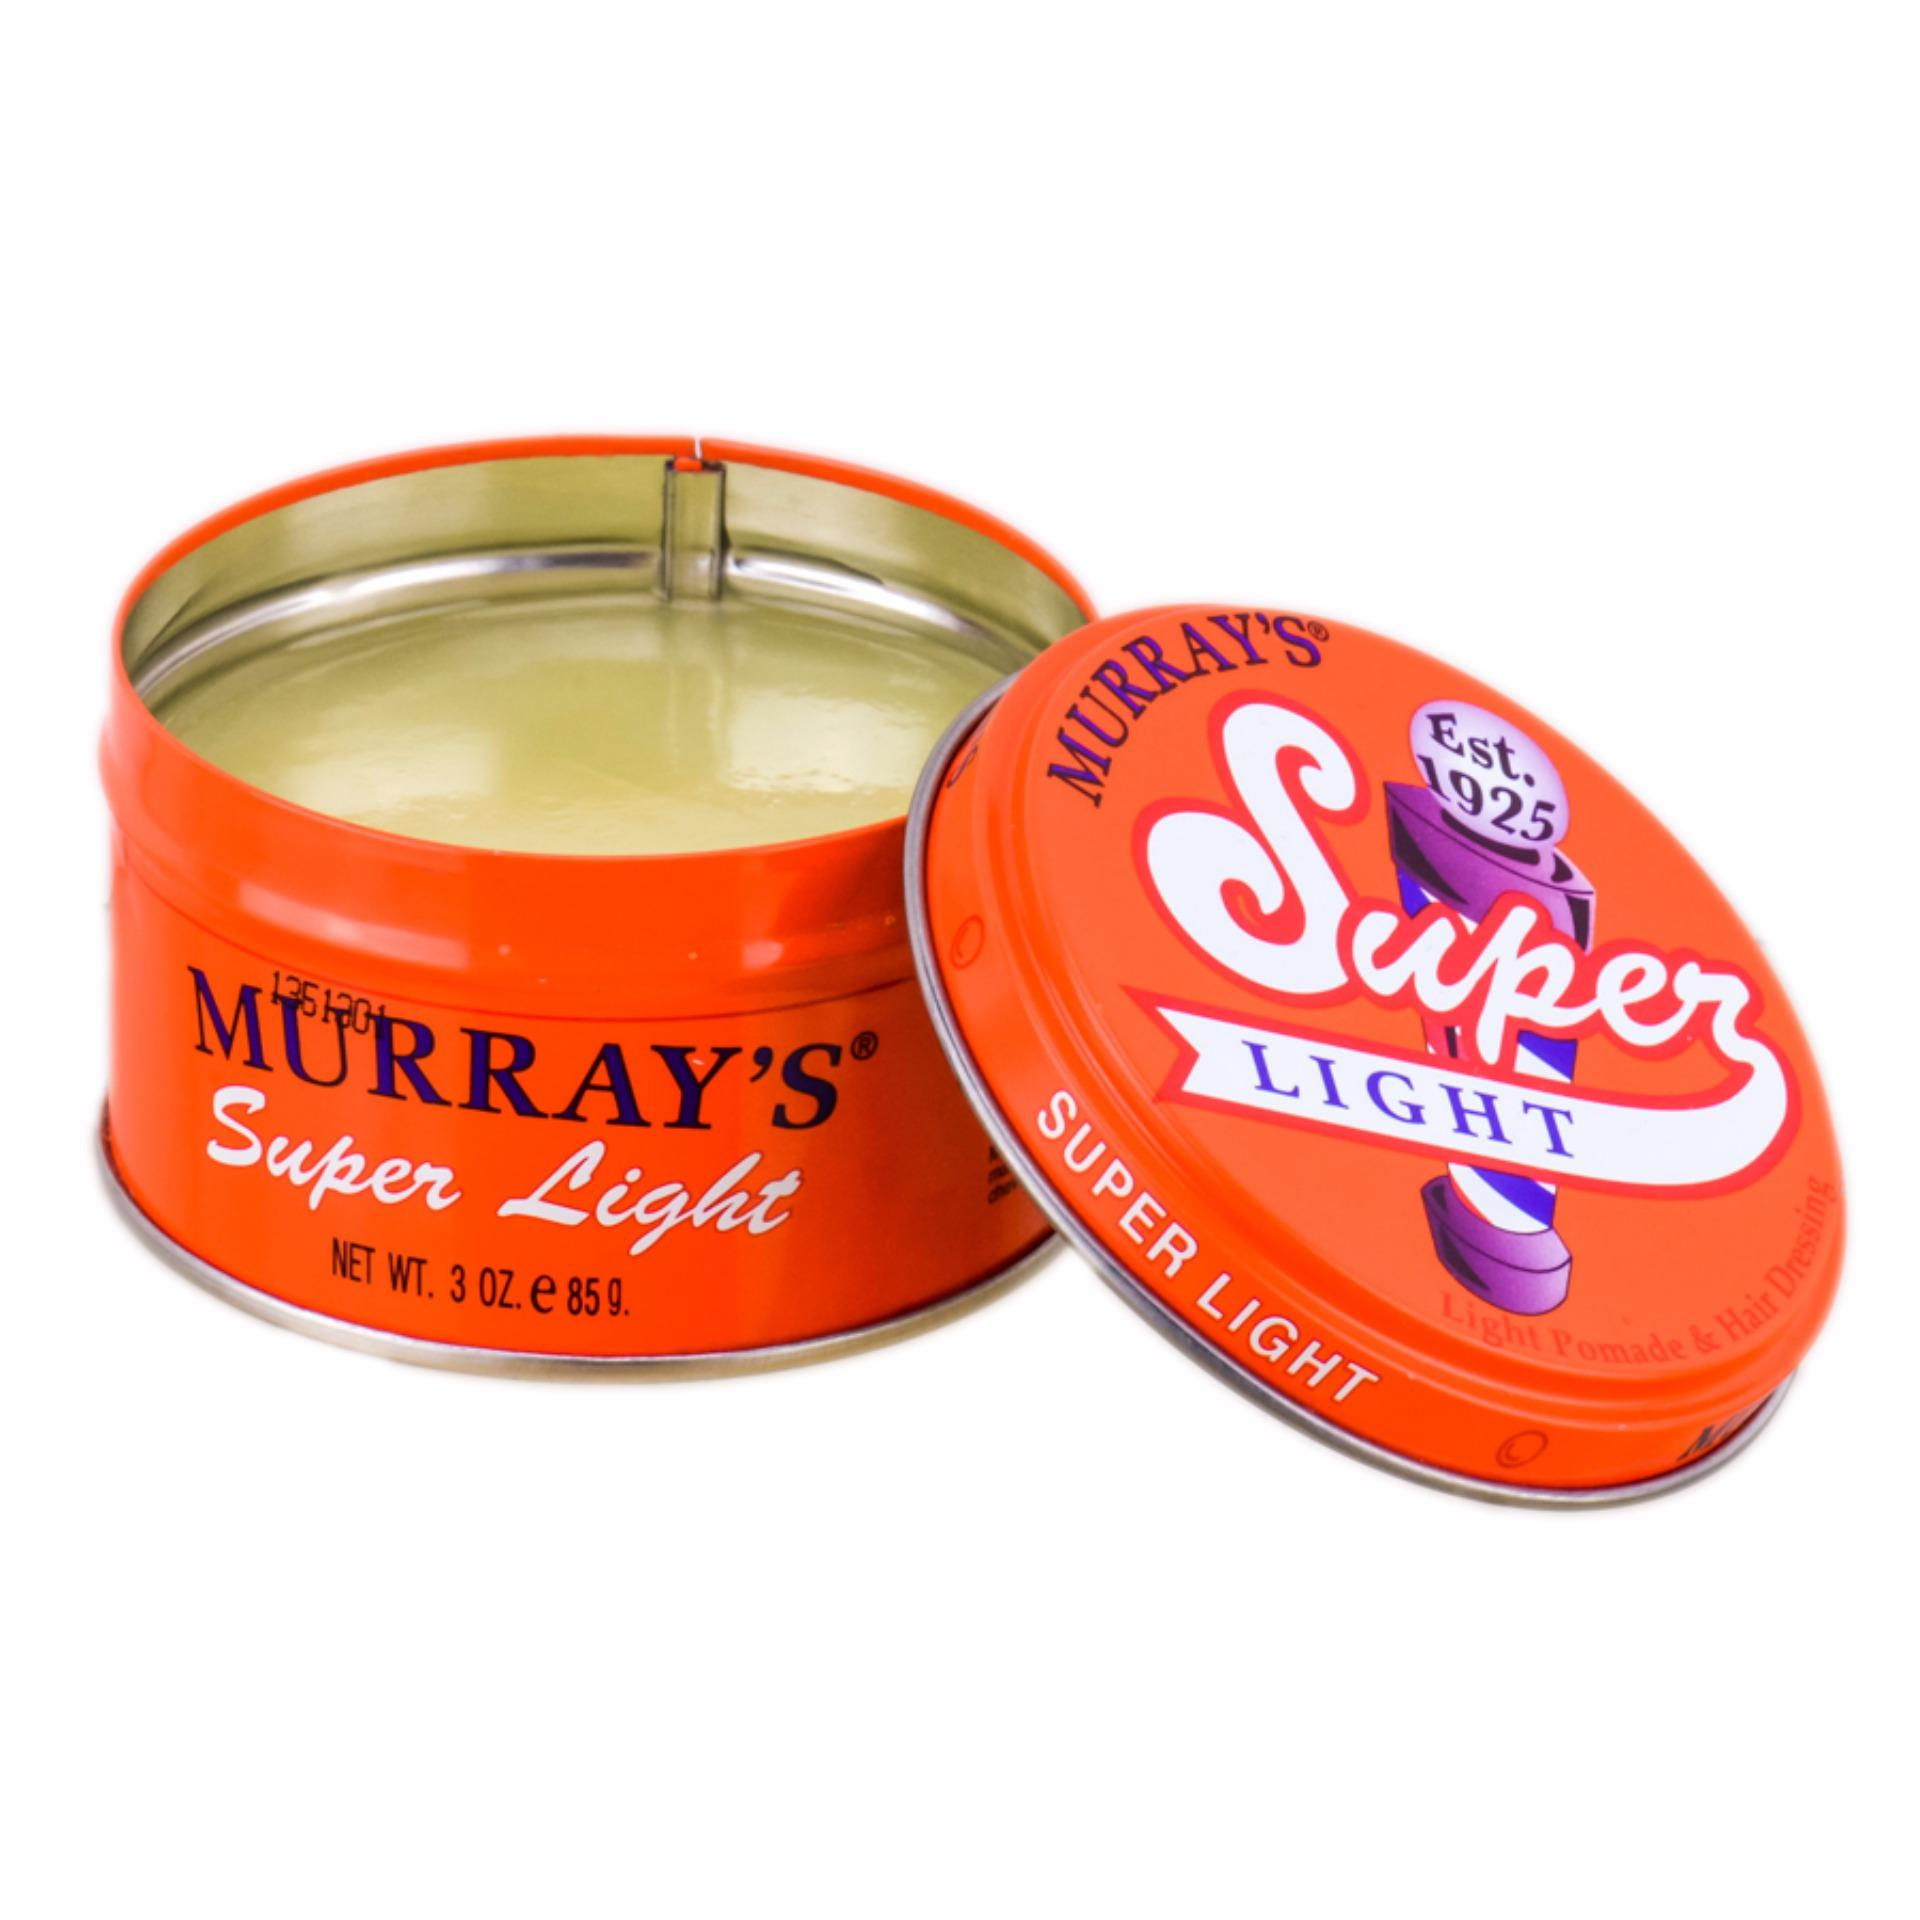 Pomade Murray Murrays Superlight Oilbased